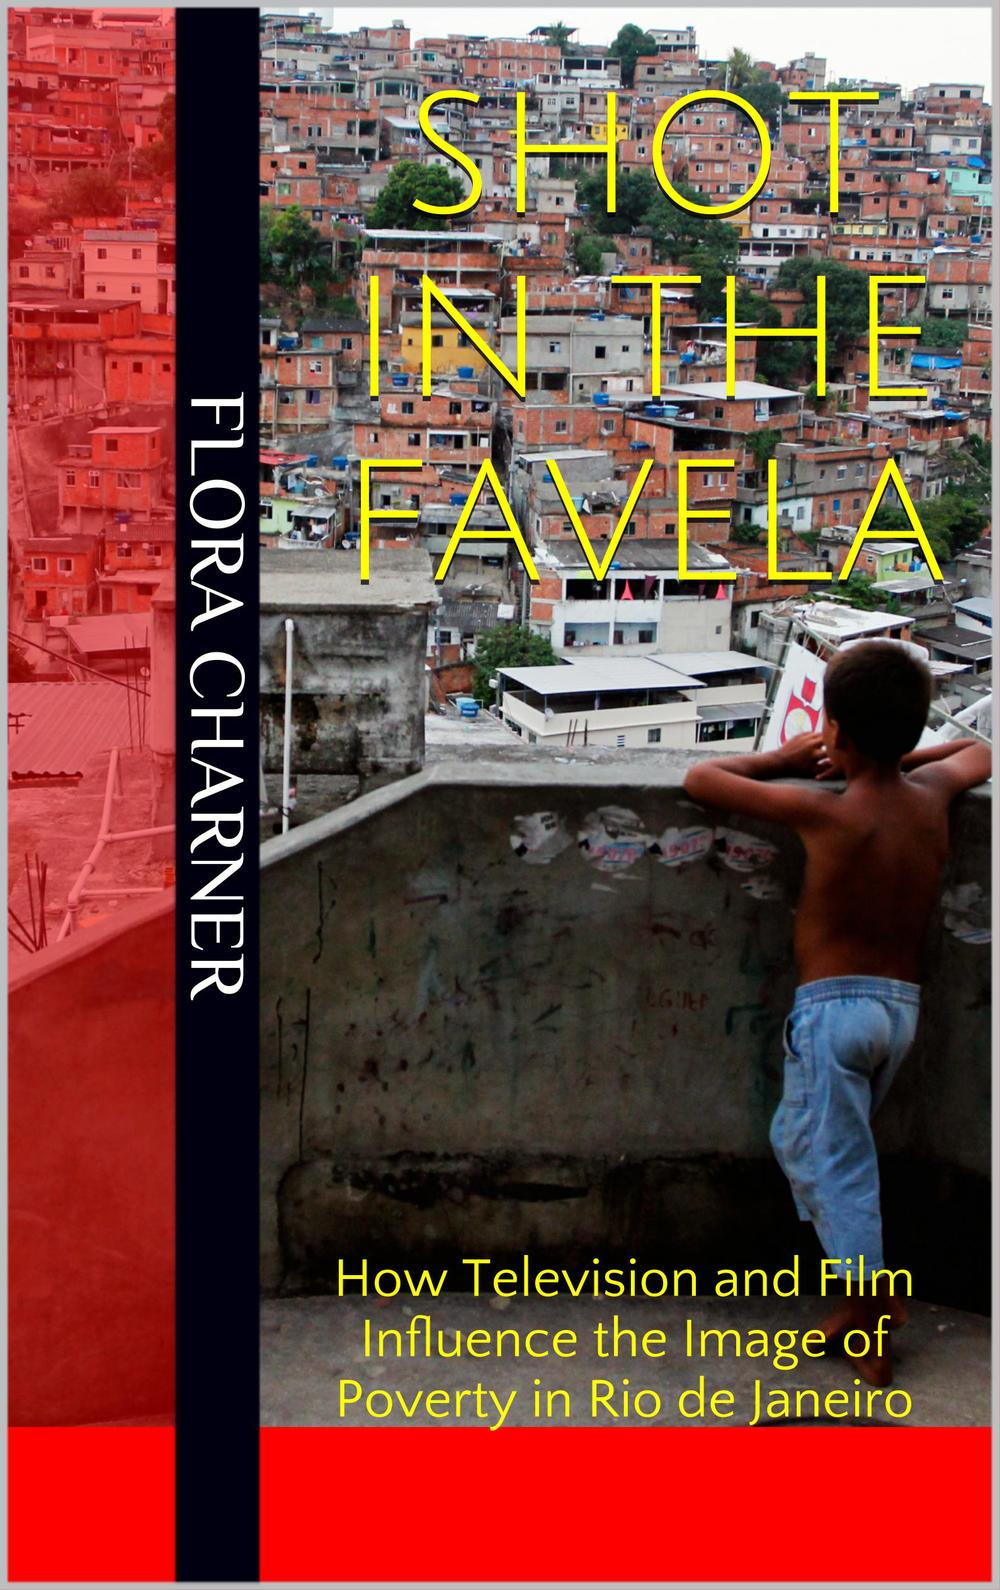 Shot in the Favela, by Flora Charner